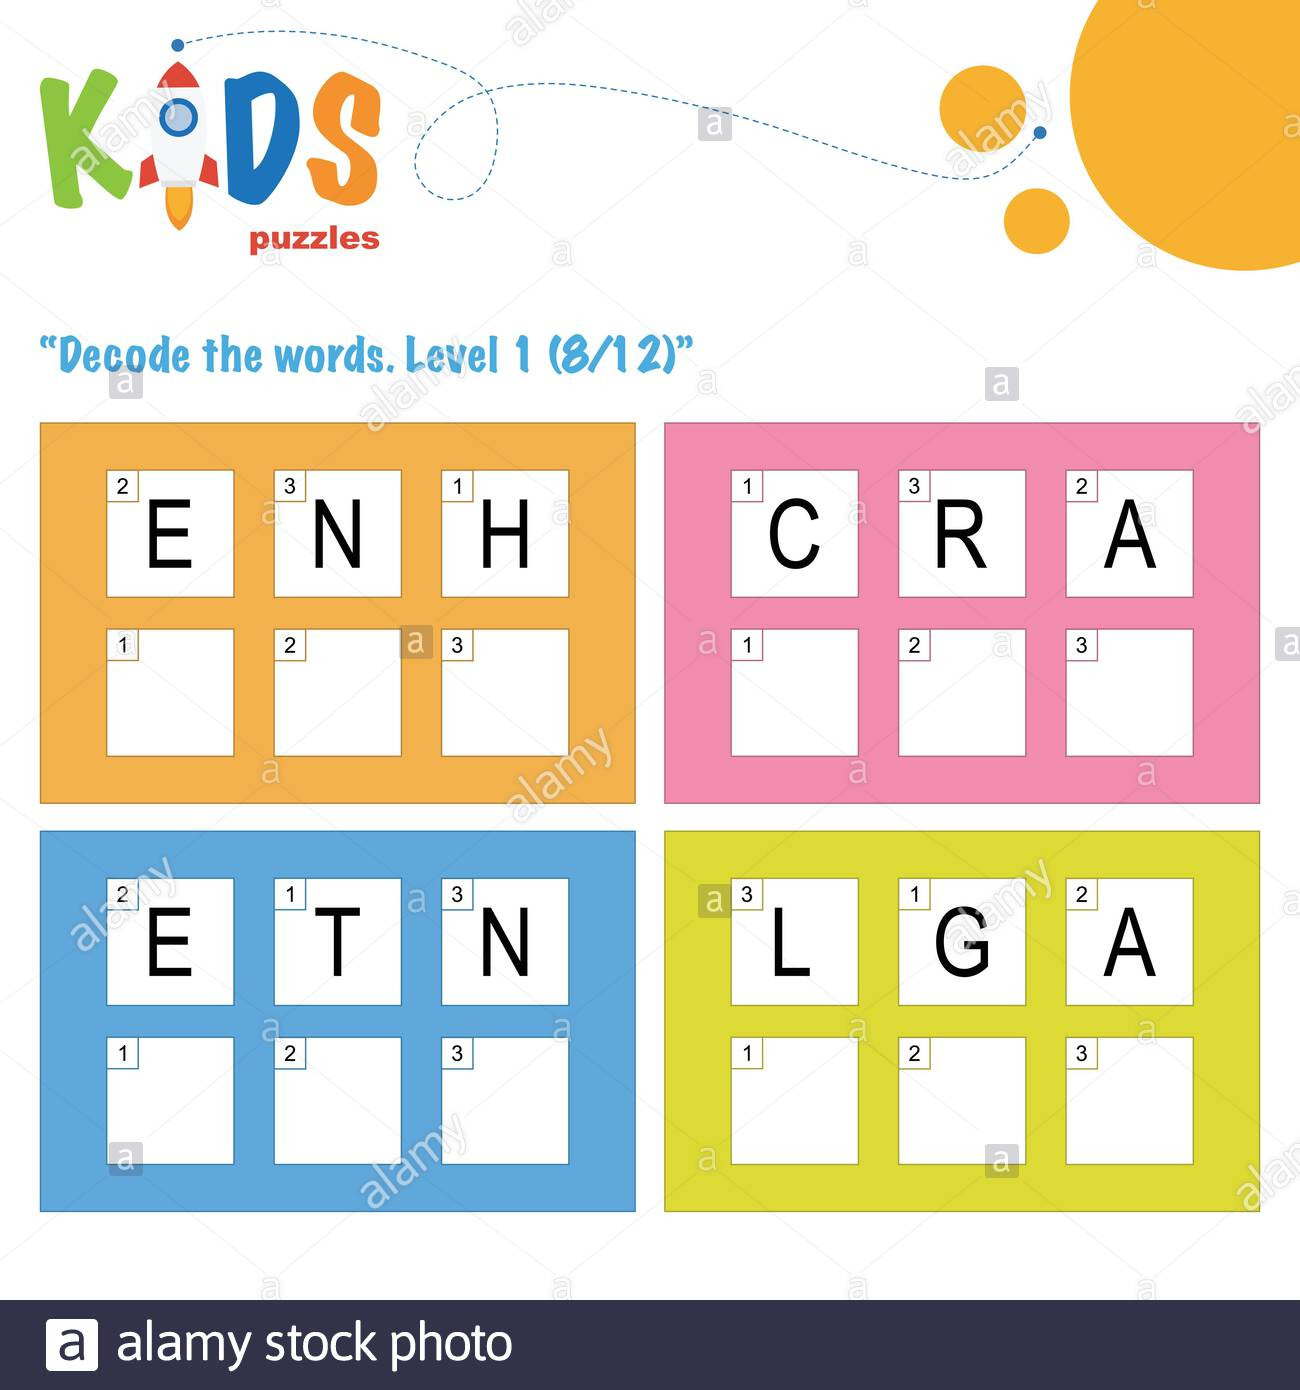 decode the 3 letter words worksheet practice for preschool elementary and middle school kids fun logic puzzle activity sheet image